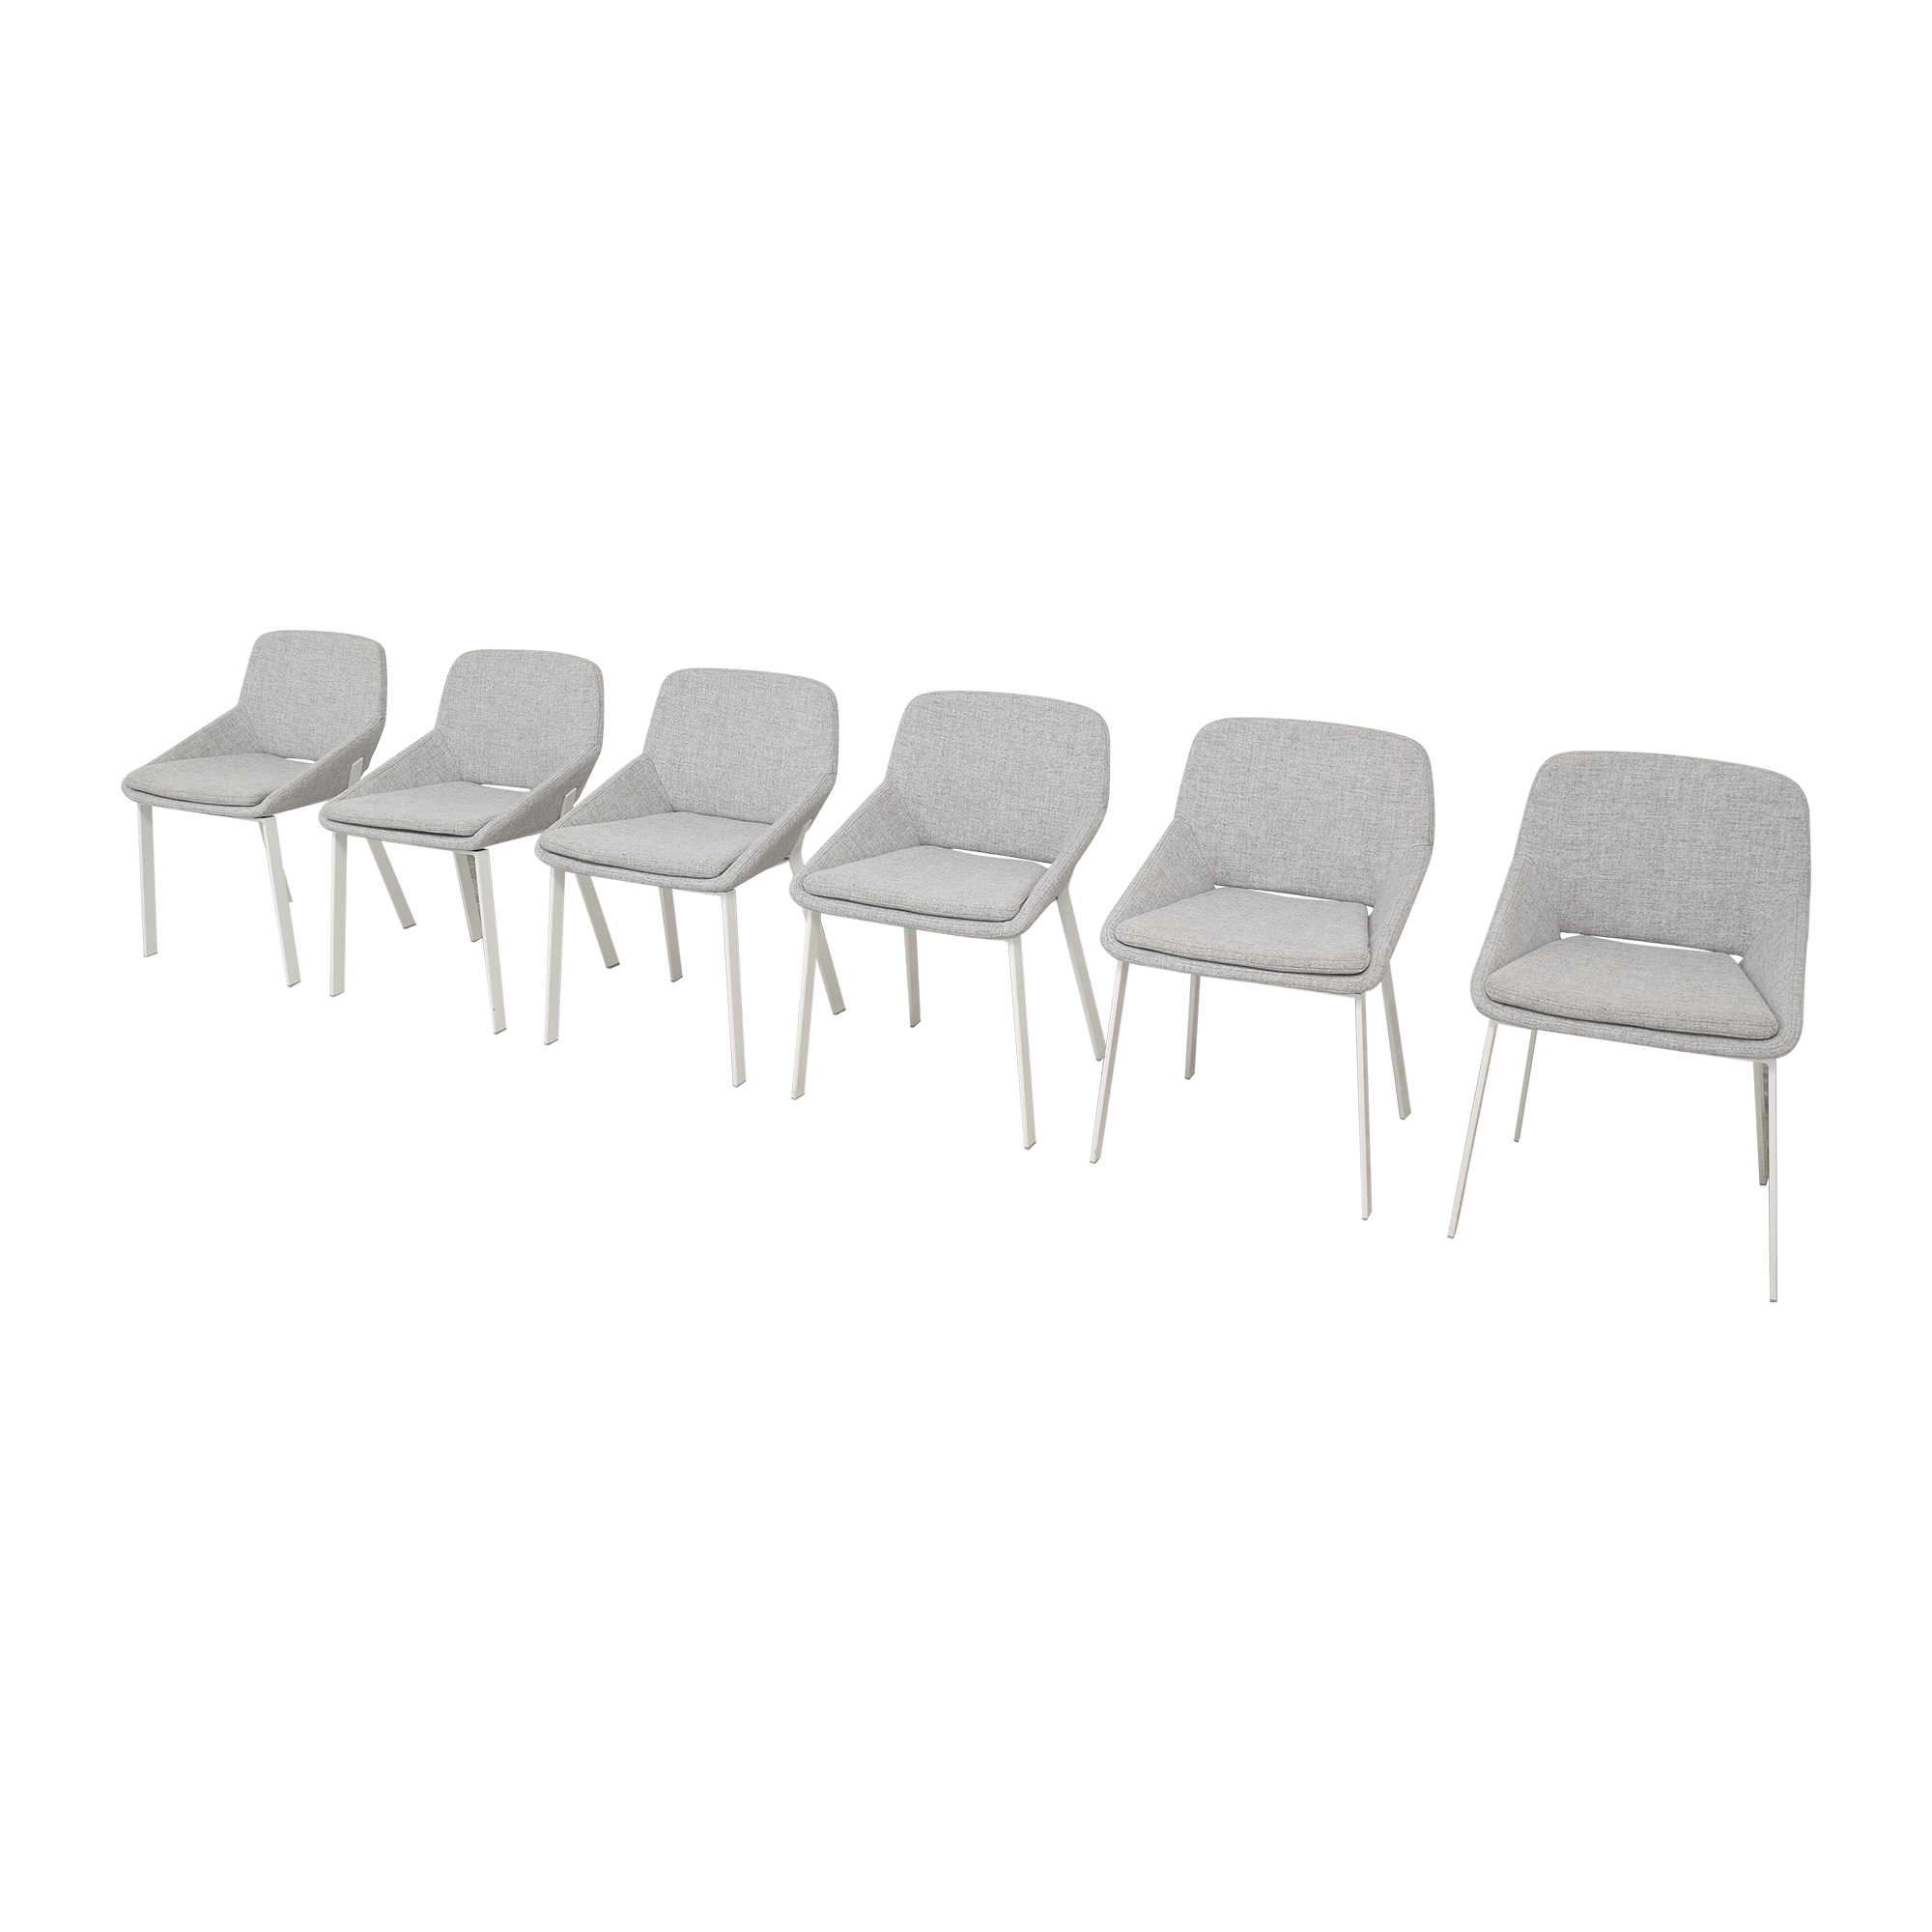 Target Modern by Dwell Magazine Dining Chairs / Dining Chairs